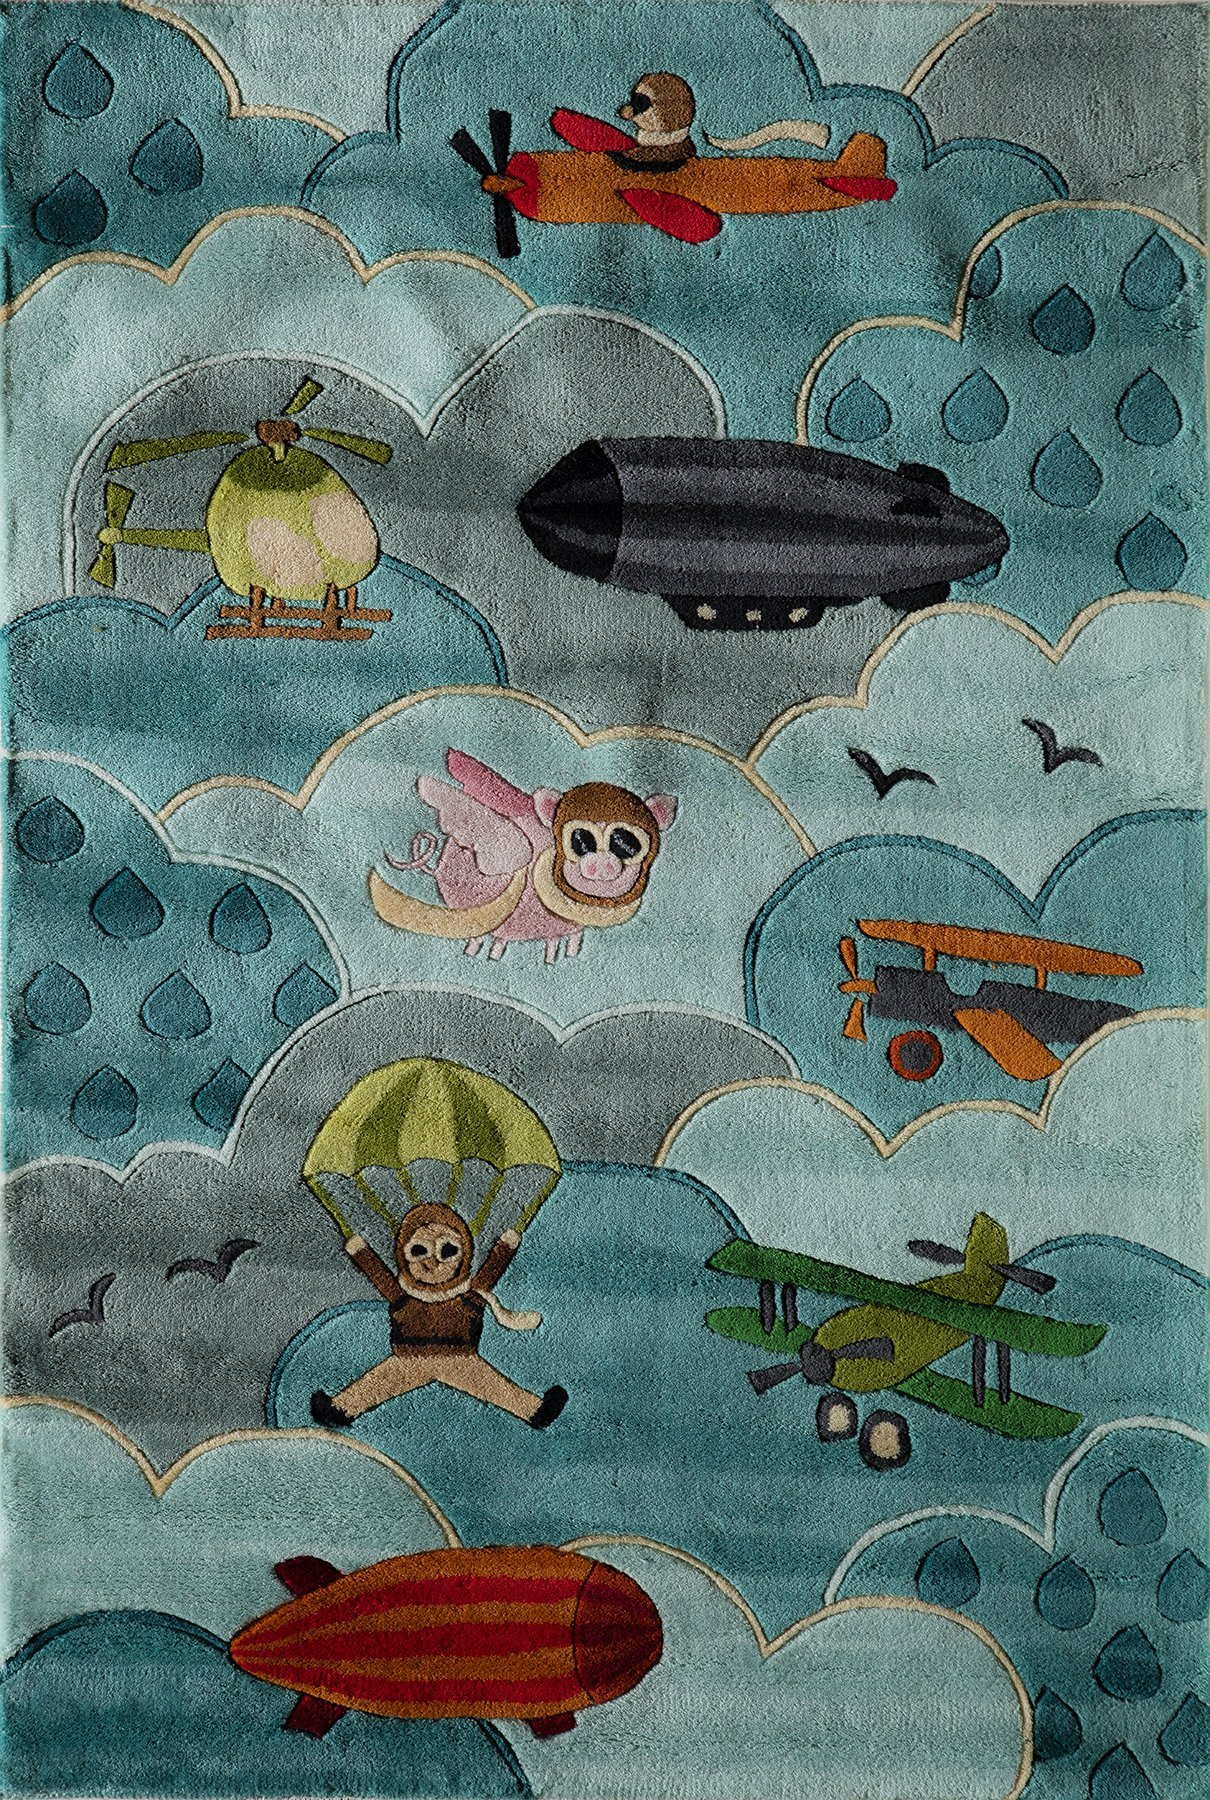 Momeni Rugs LMOJULMJ10SKY3050 Lil' Mo Whimsy Collection, Kids Themed Hand Carved & Tufted Area Rug, 3' x 5', Sky Blue